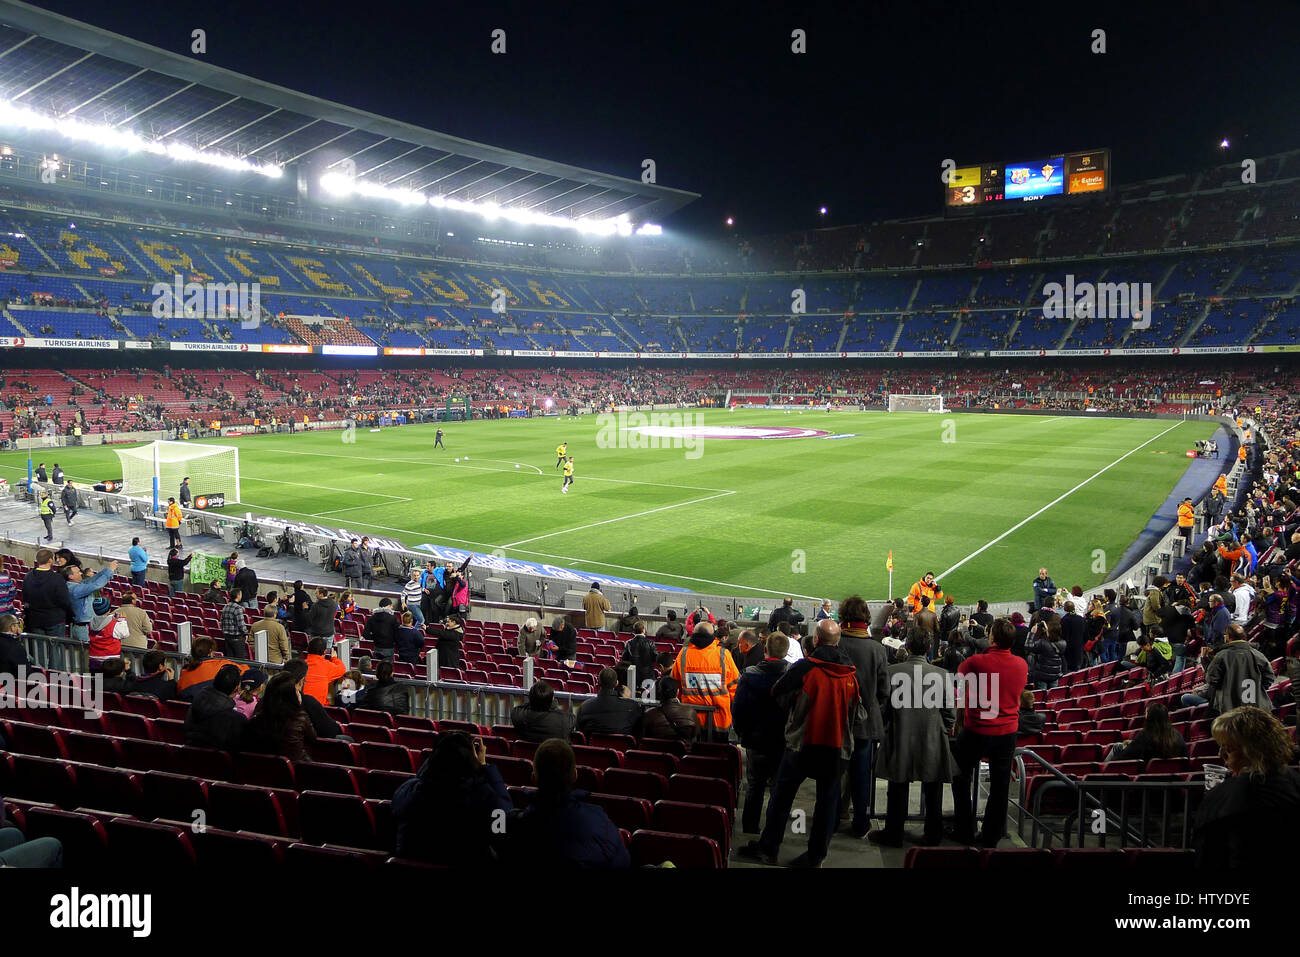 Camp Nou is a football stadium in Barcelona, Spain. It is also the home of Futbold Club Barcelona since 1957. - Stock Image